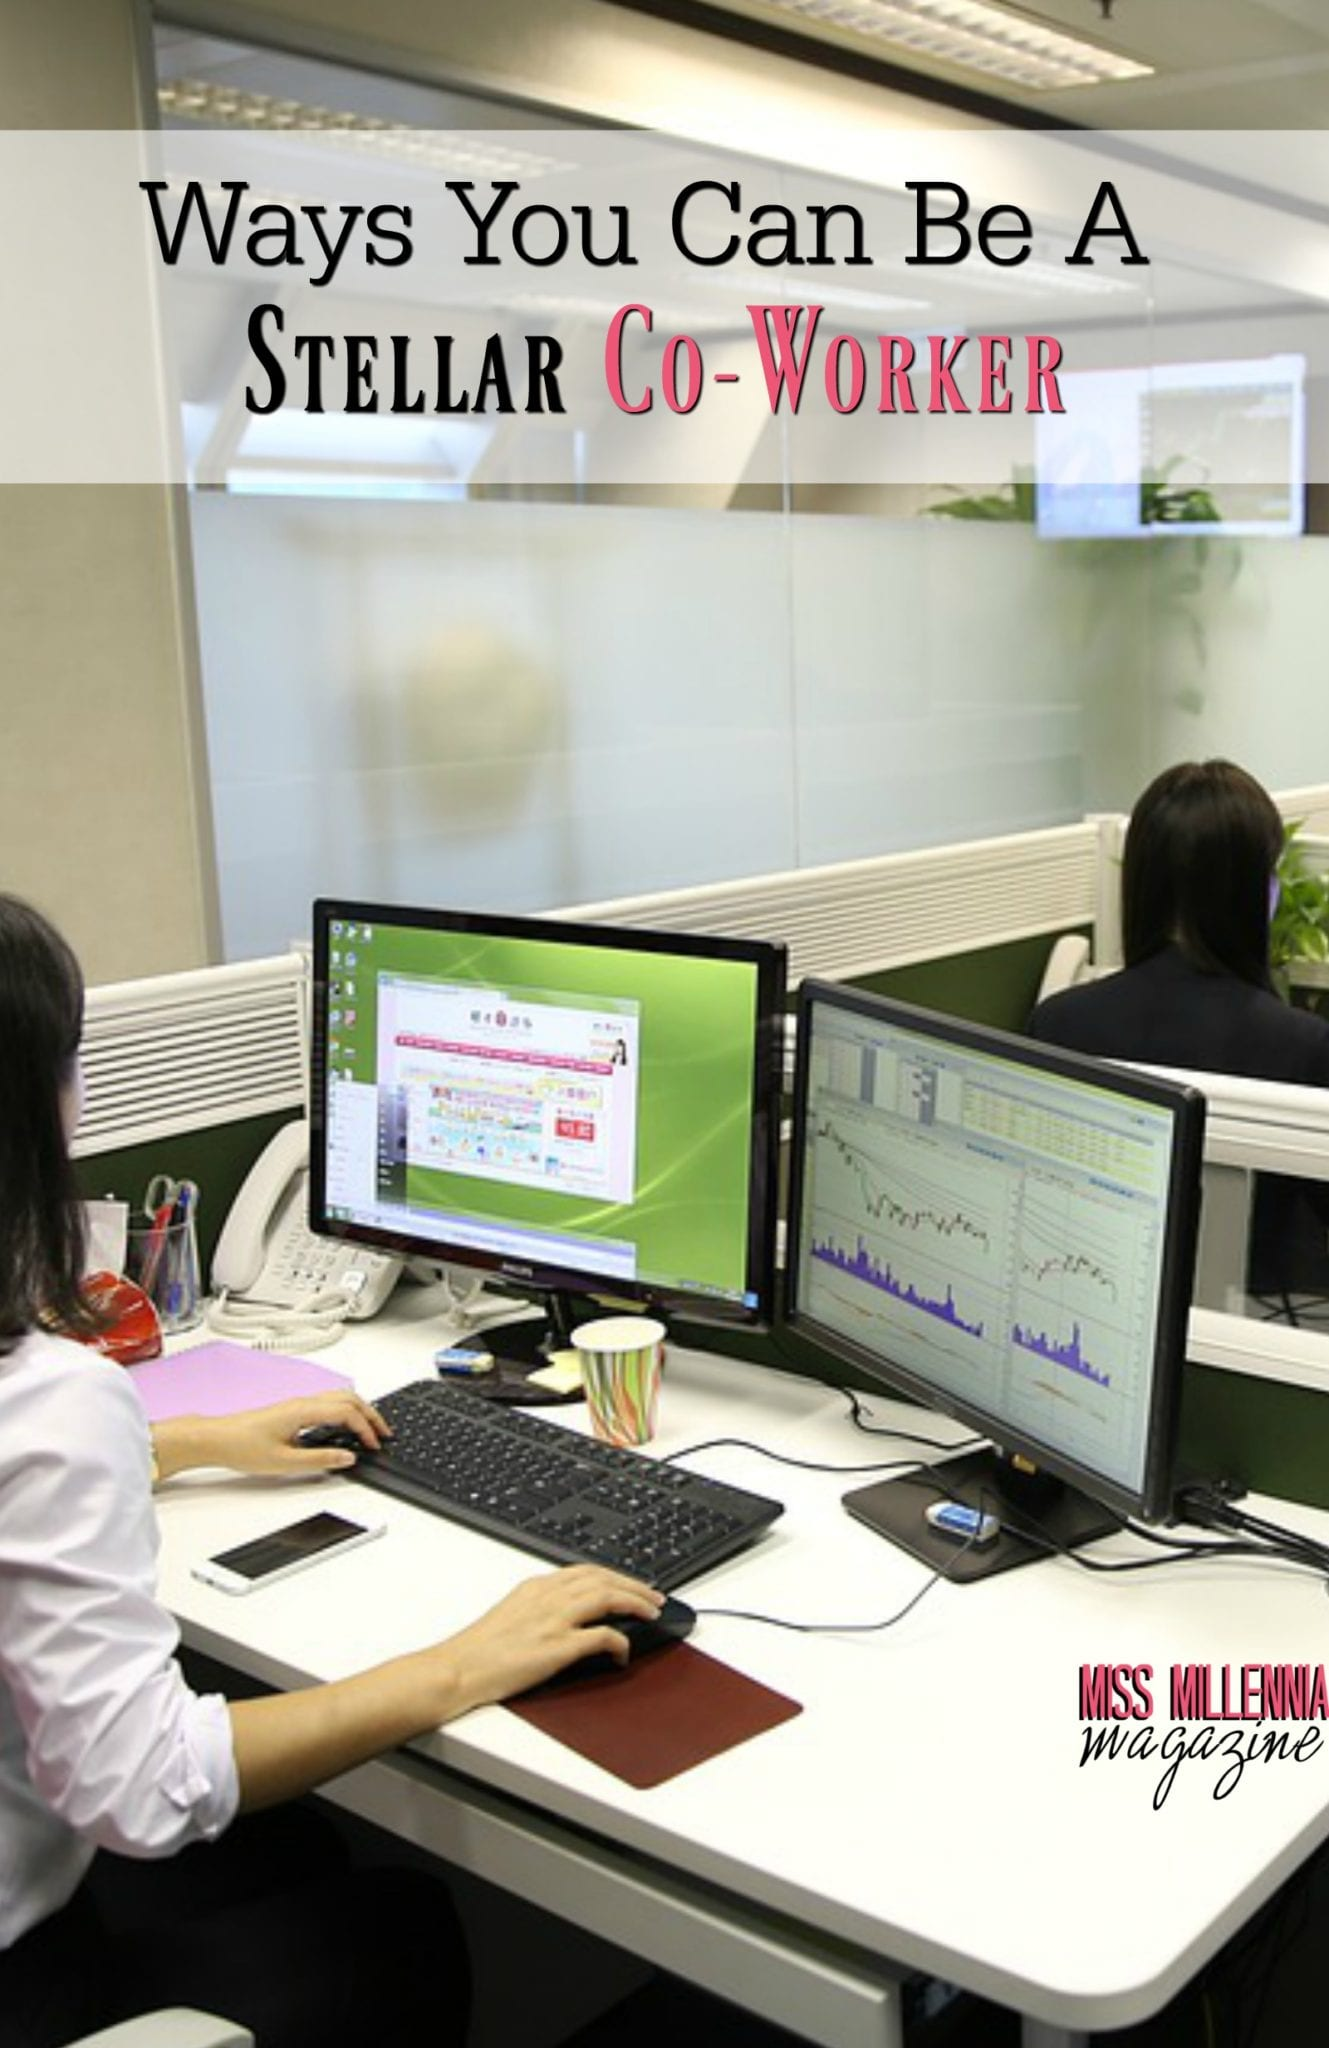 ways-you-can-be-a-stellar-co-worker